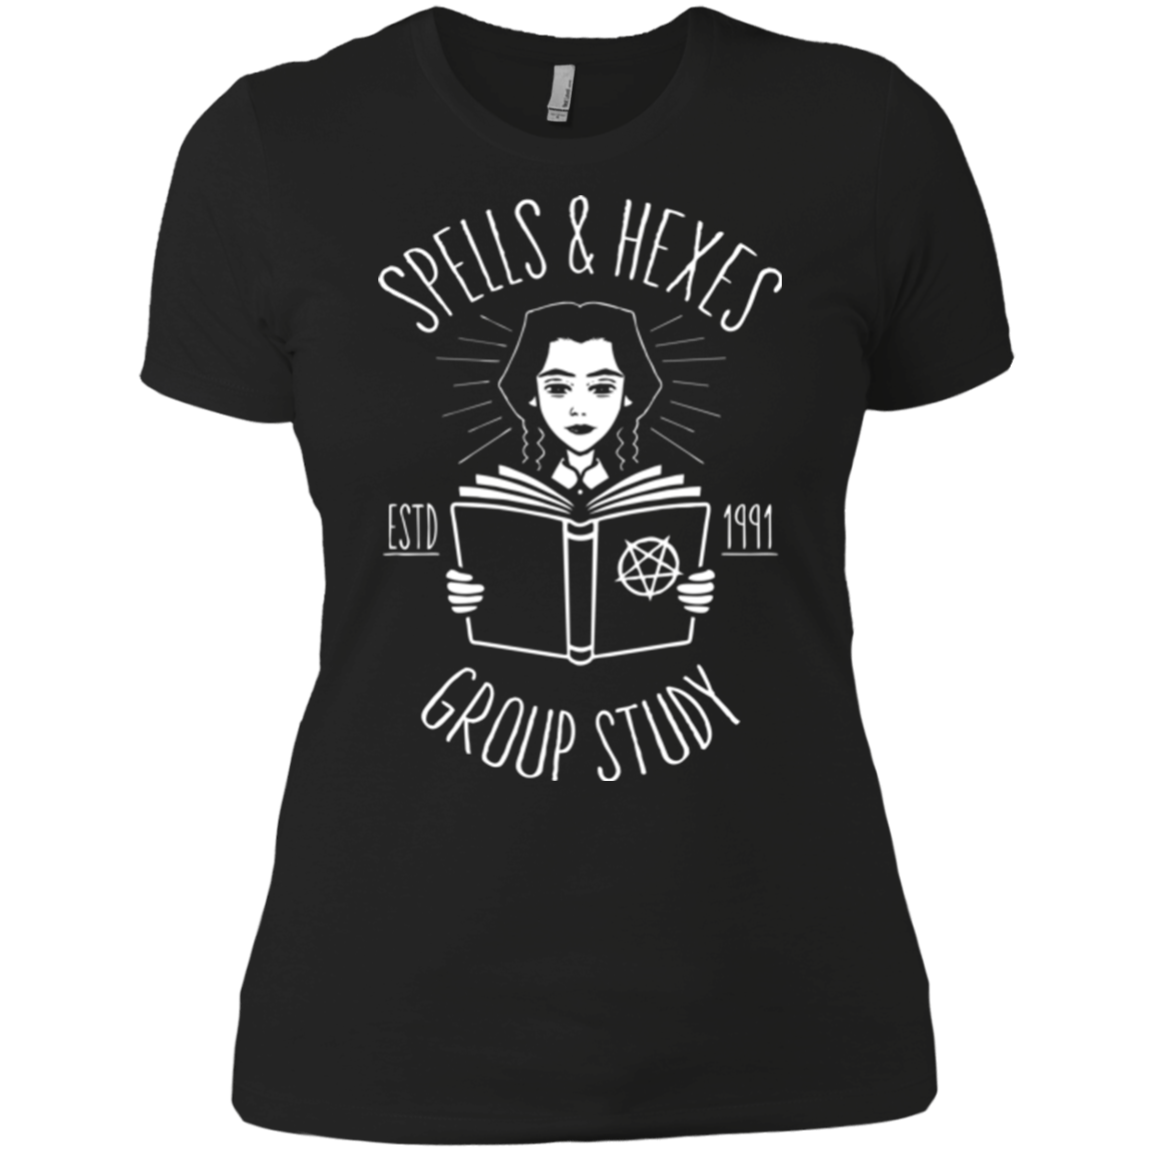 Spells and Hexes Group Study Women's Premium T-Shirt